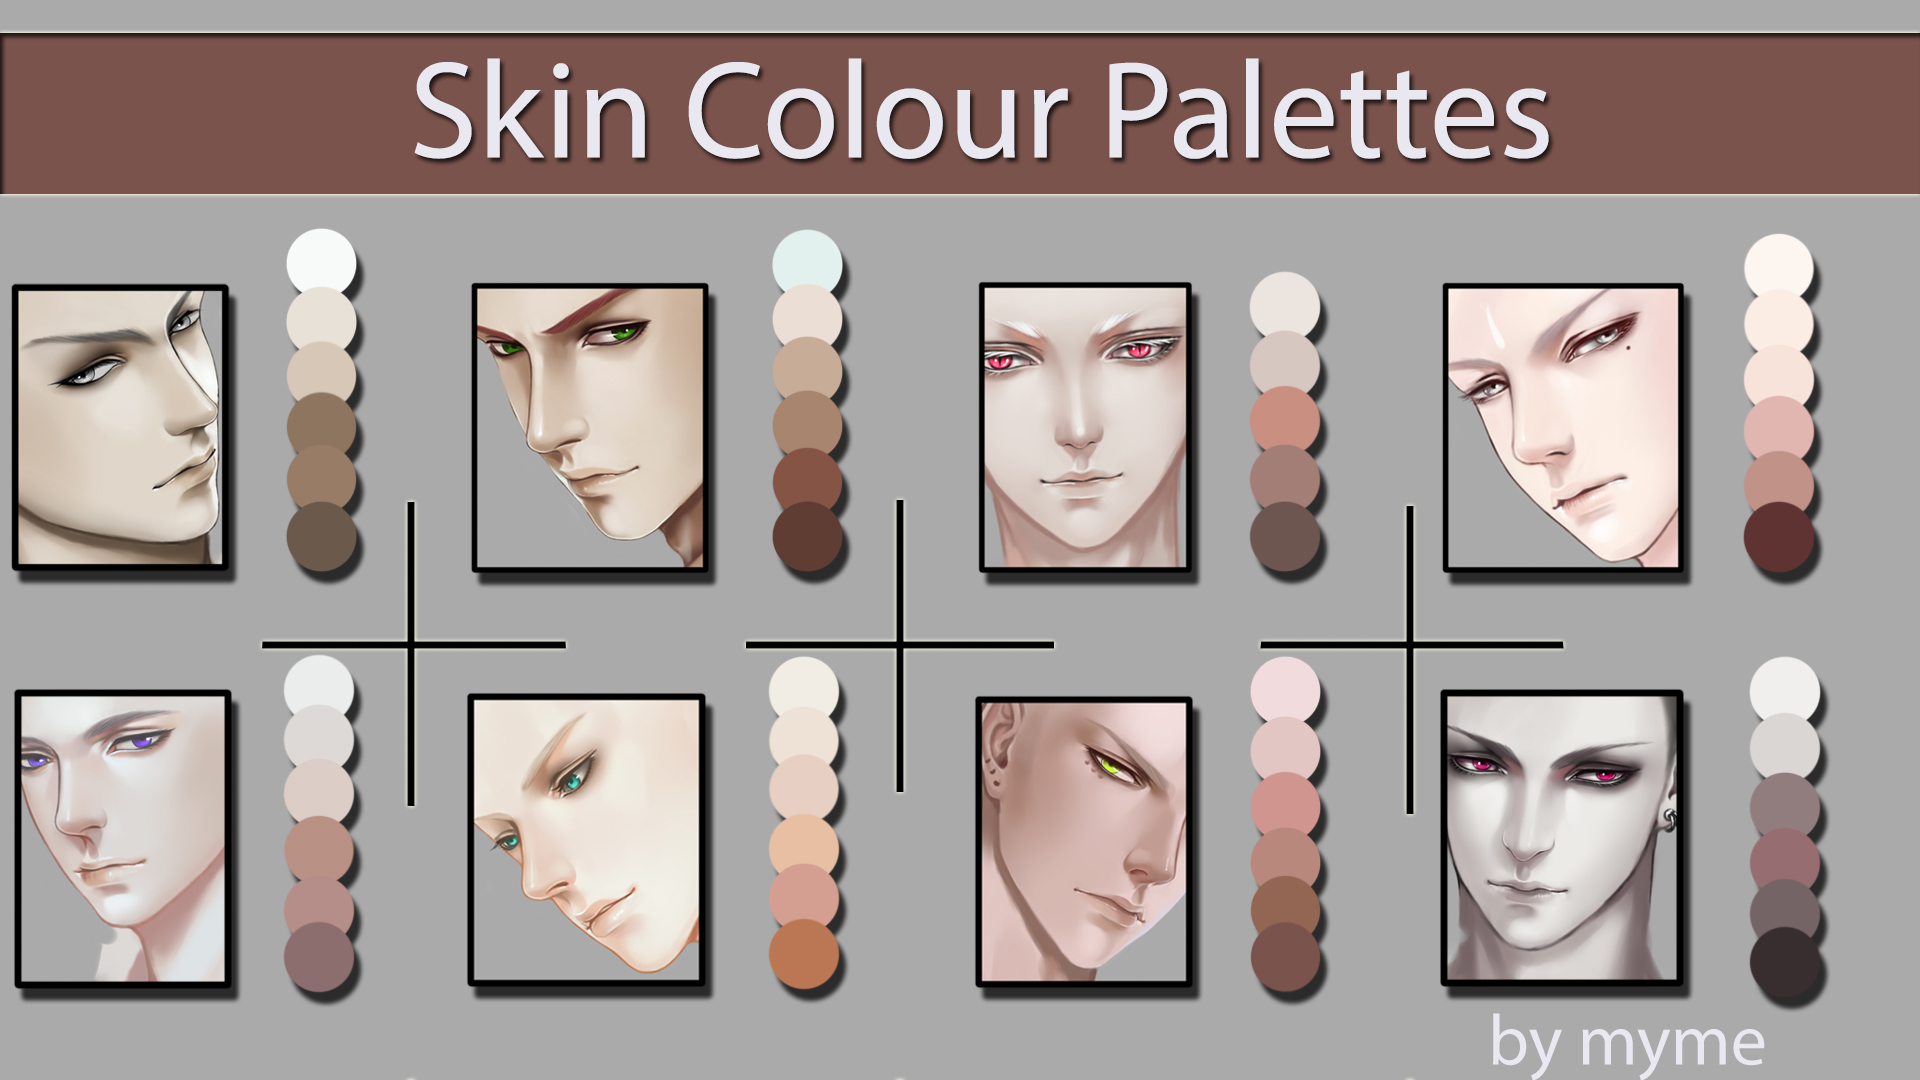 Skin Colour Palettes By Myme1 On Deviantart